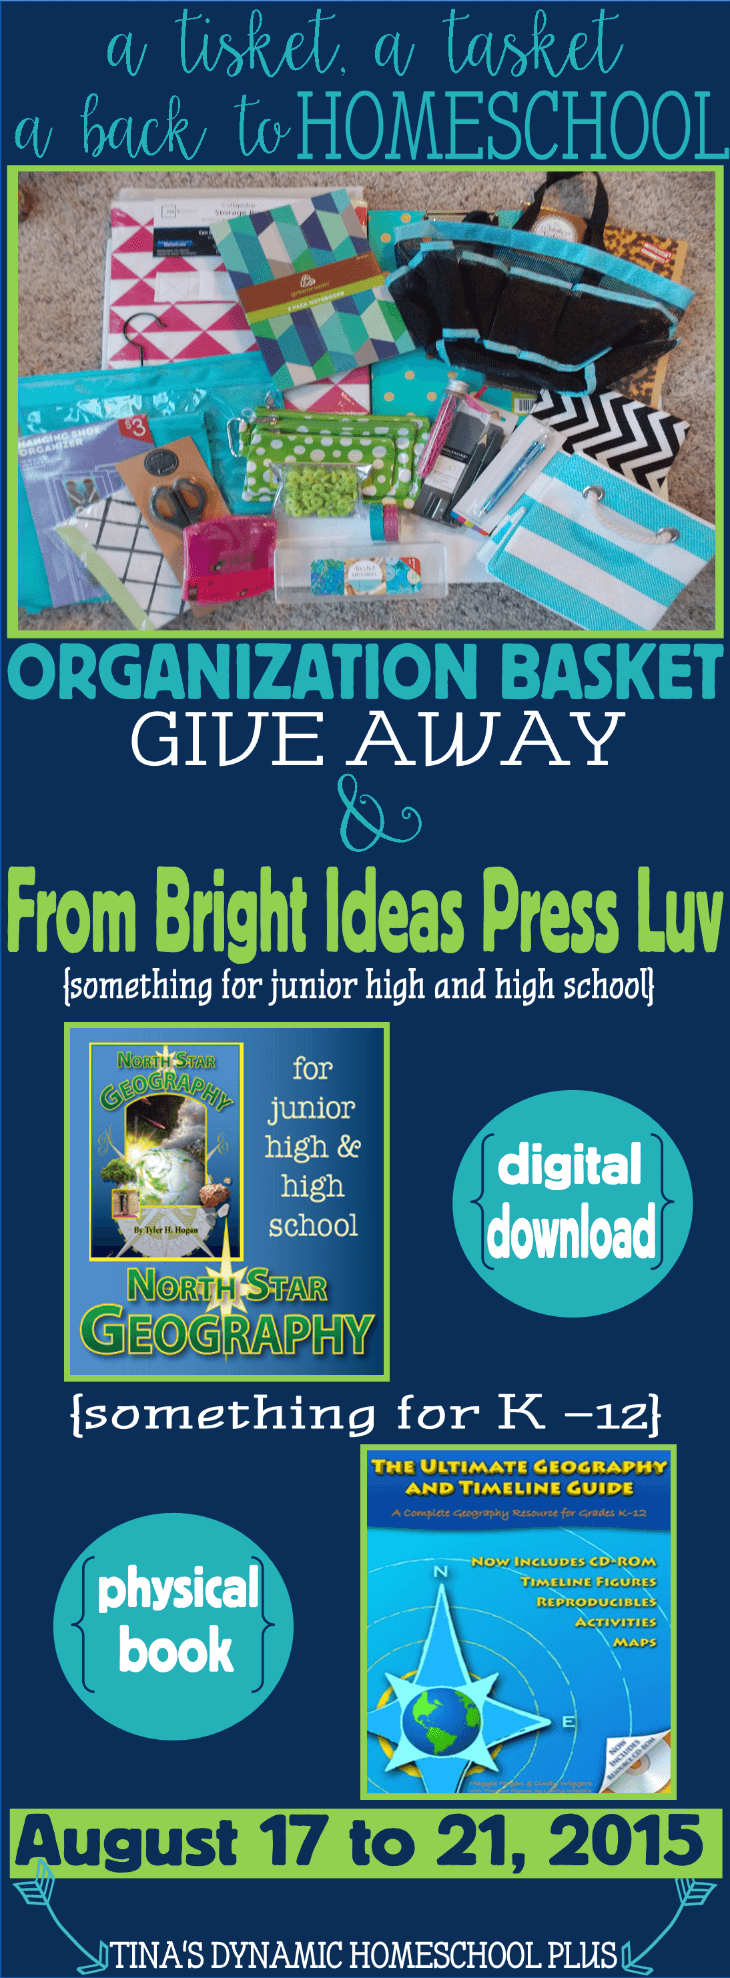 Homeschool Organization A Back to School Basket Worth Swooning Over @ Tinas Dynamic Homeschool Plus